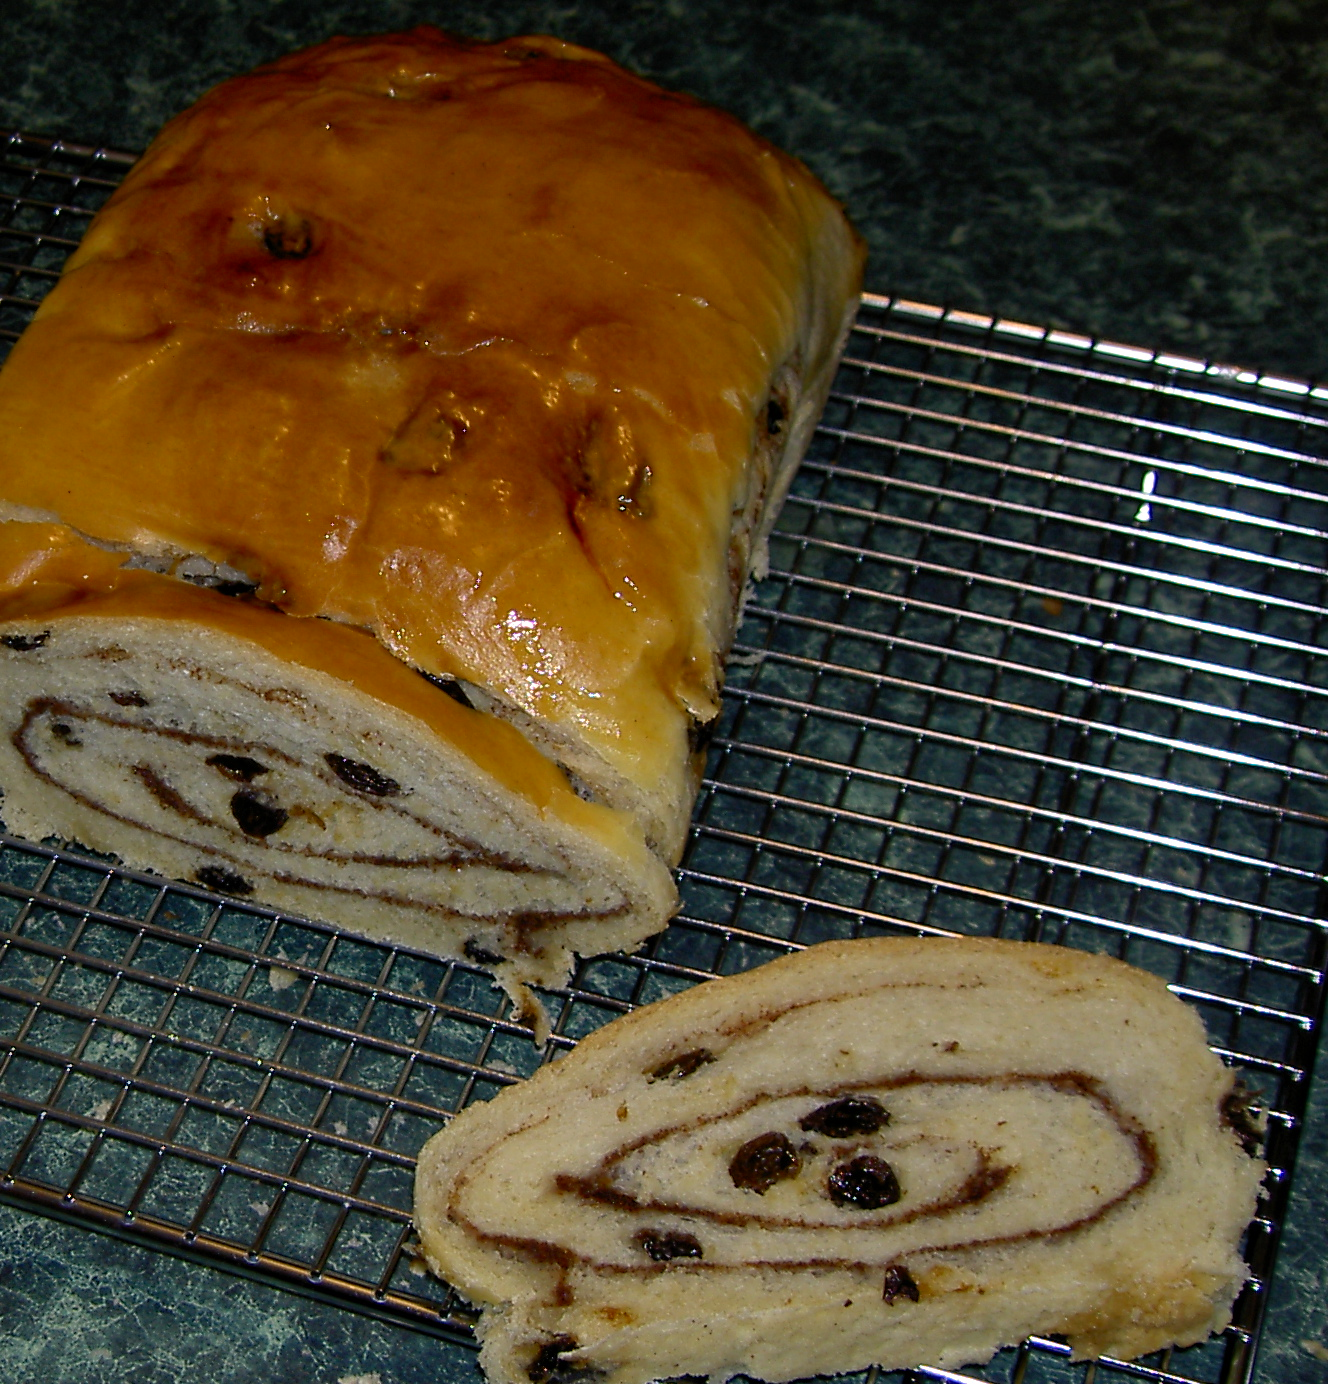 File:Cinnamon swirl raisin bread.jpg - Wikipedia, the free ...